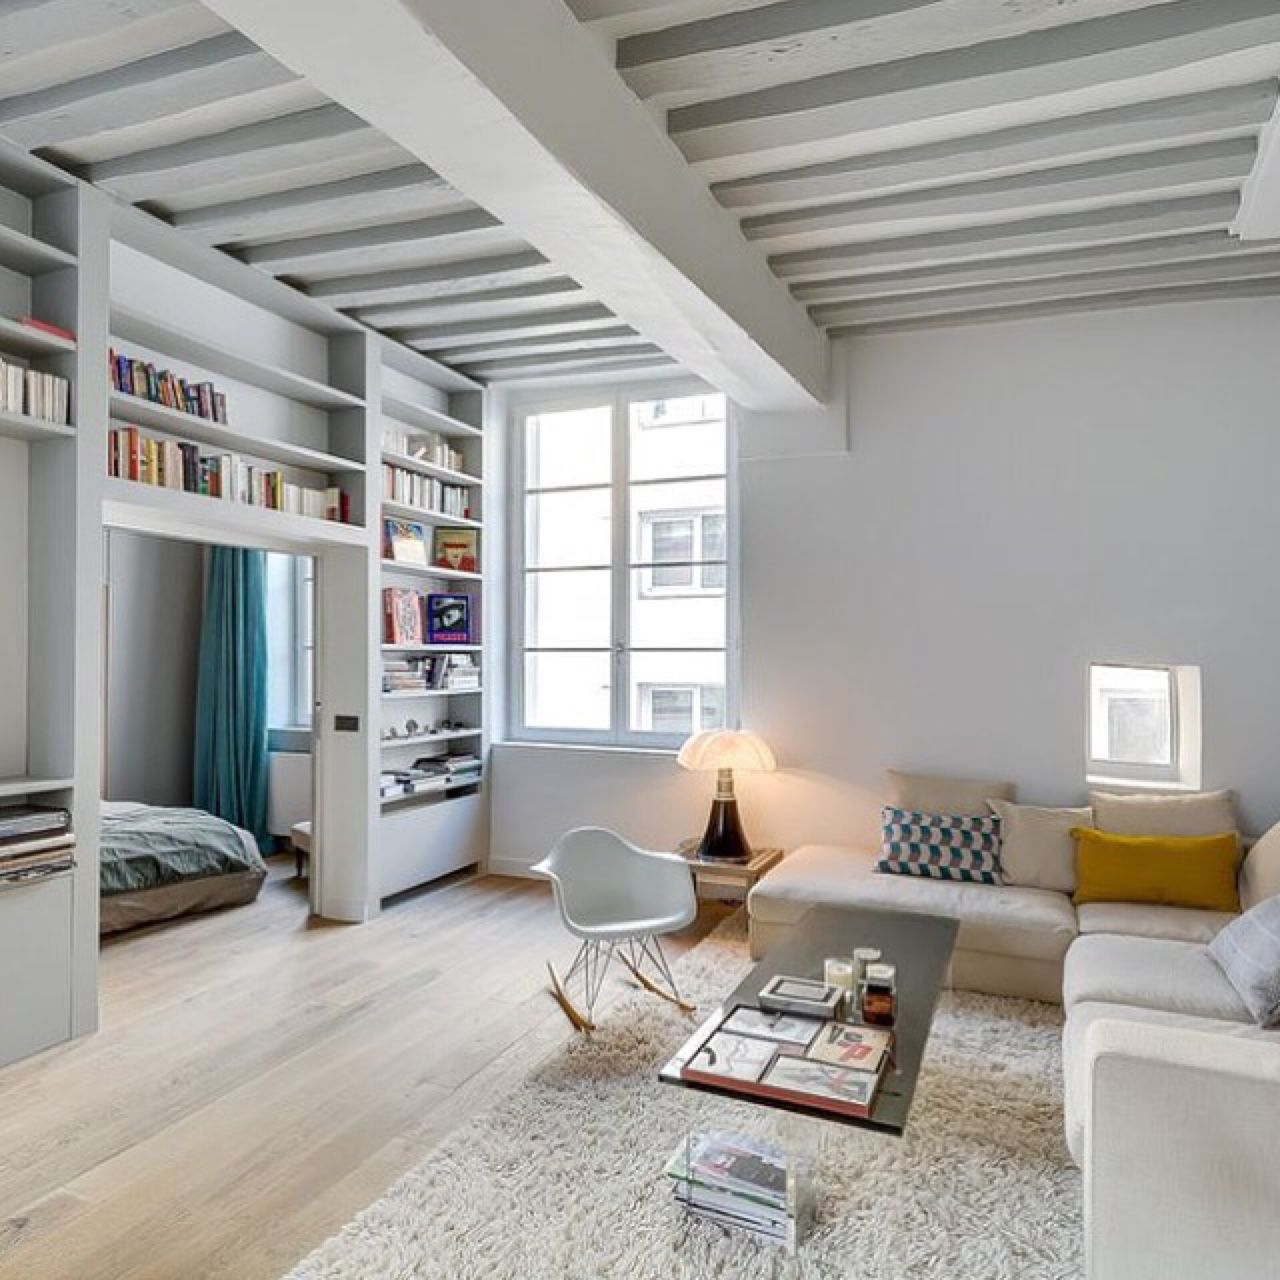 Living room with white wood beams and wood floors